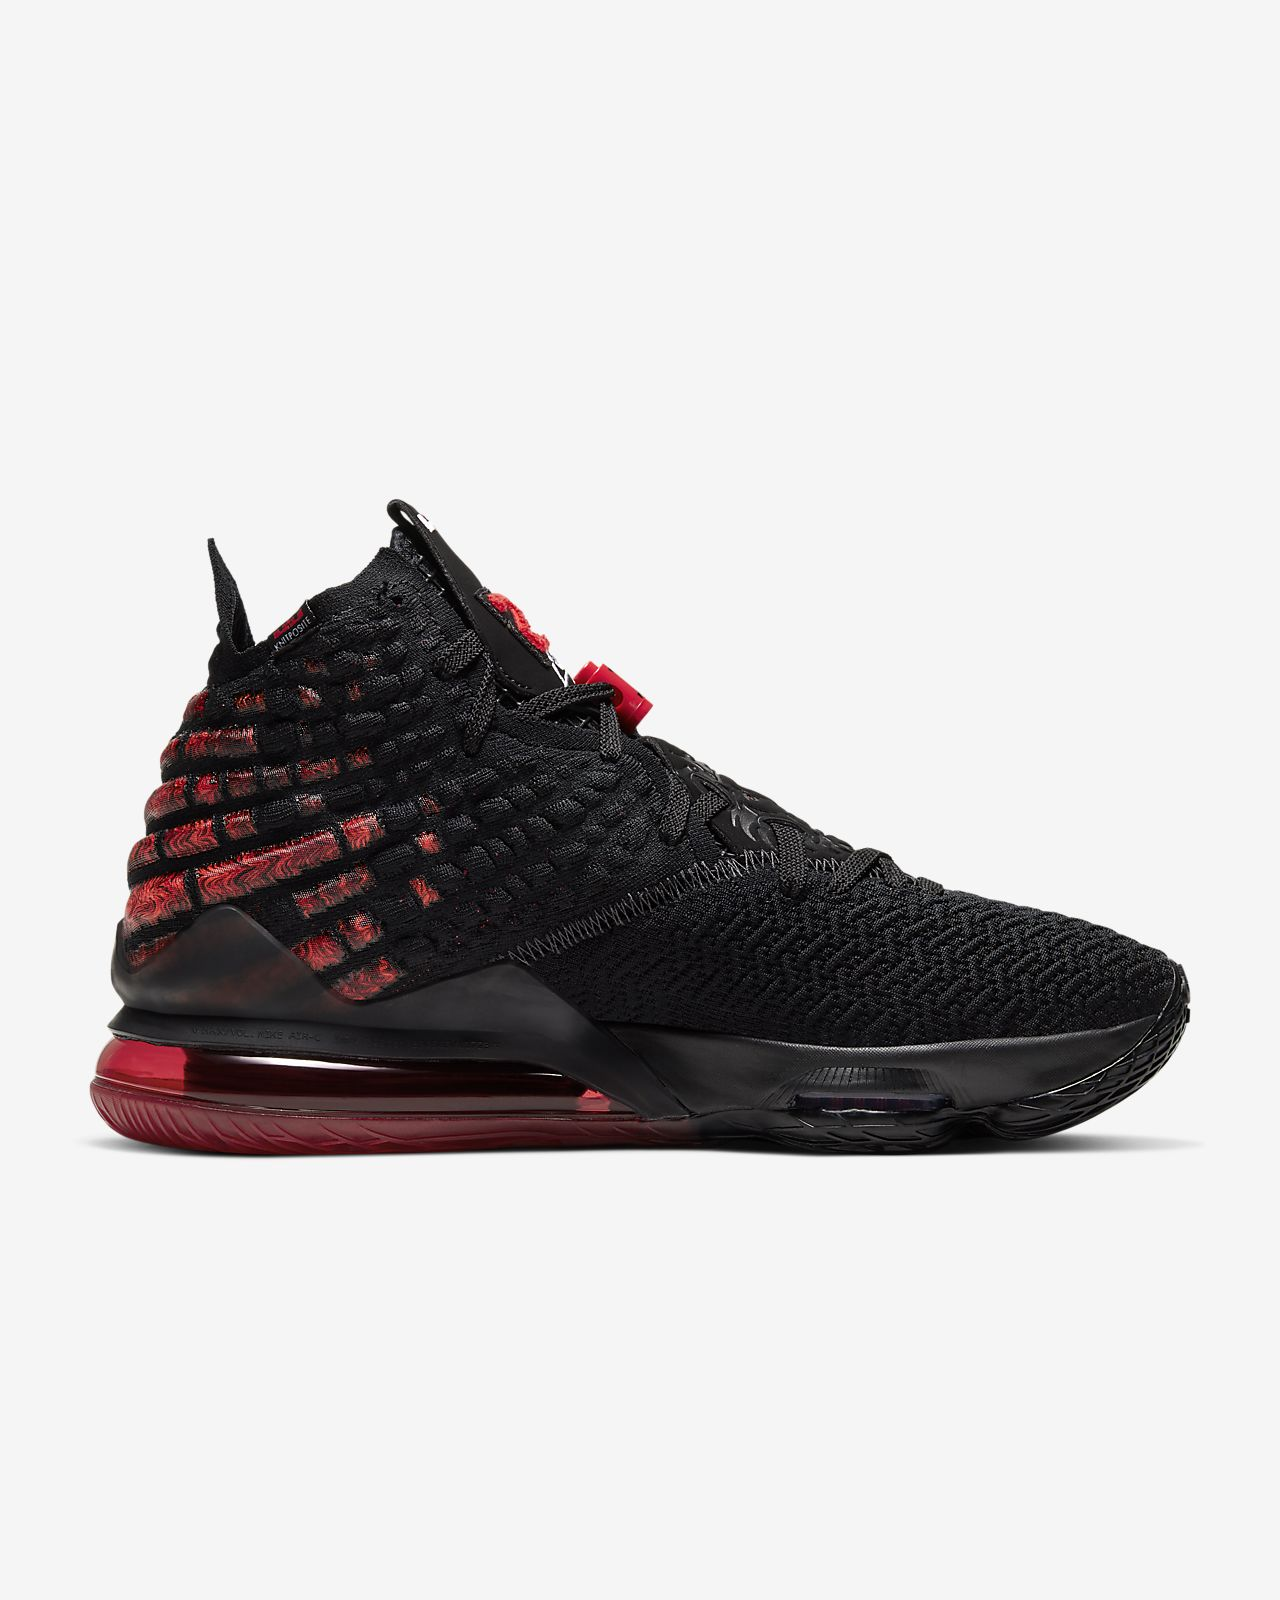 good quality 50% off cost charm Chaussure de basketball LeBron 17. Nike BE